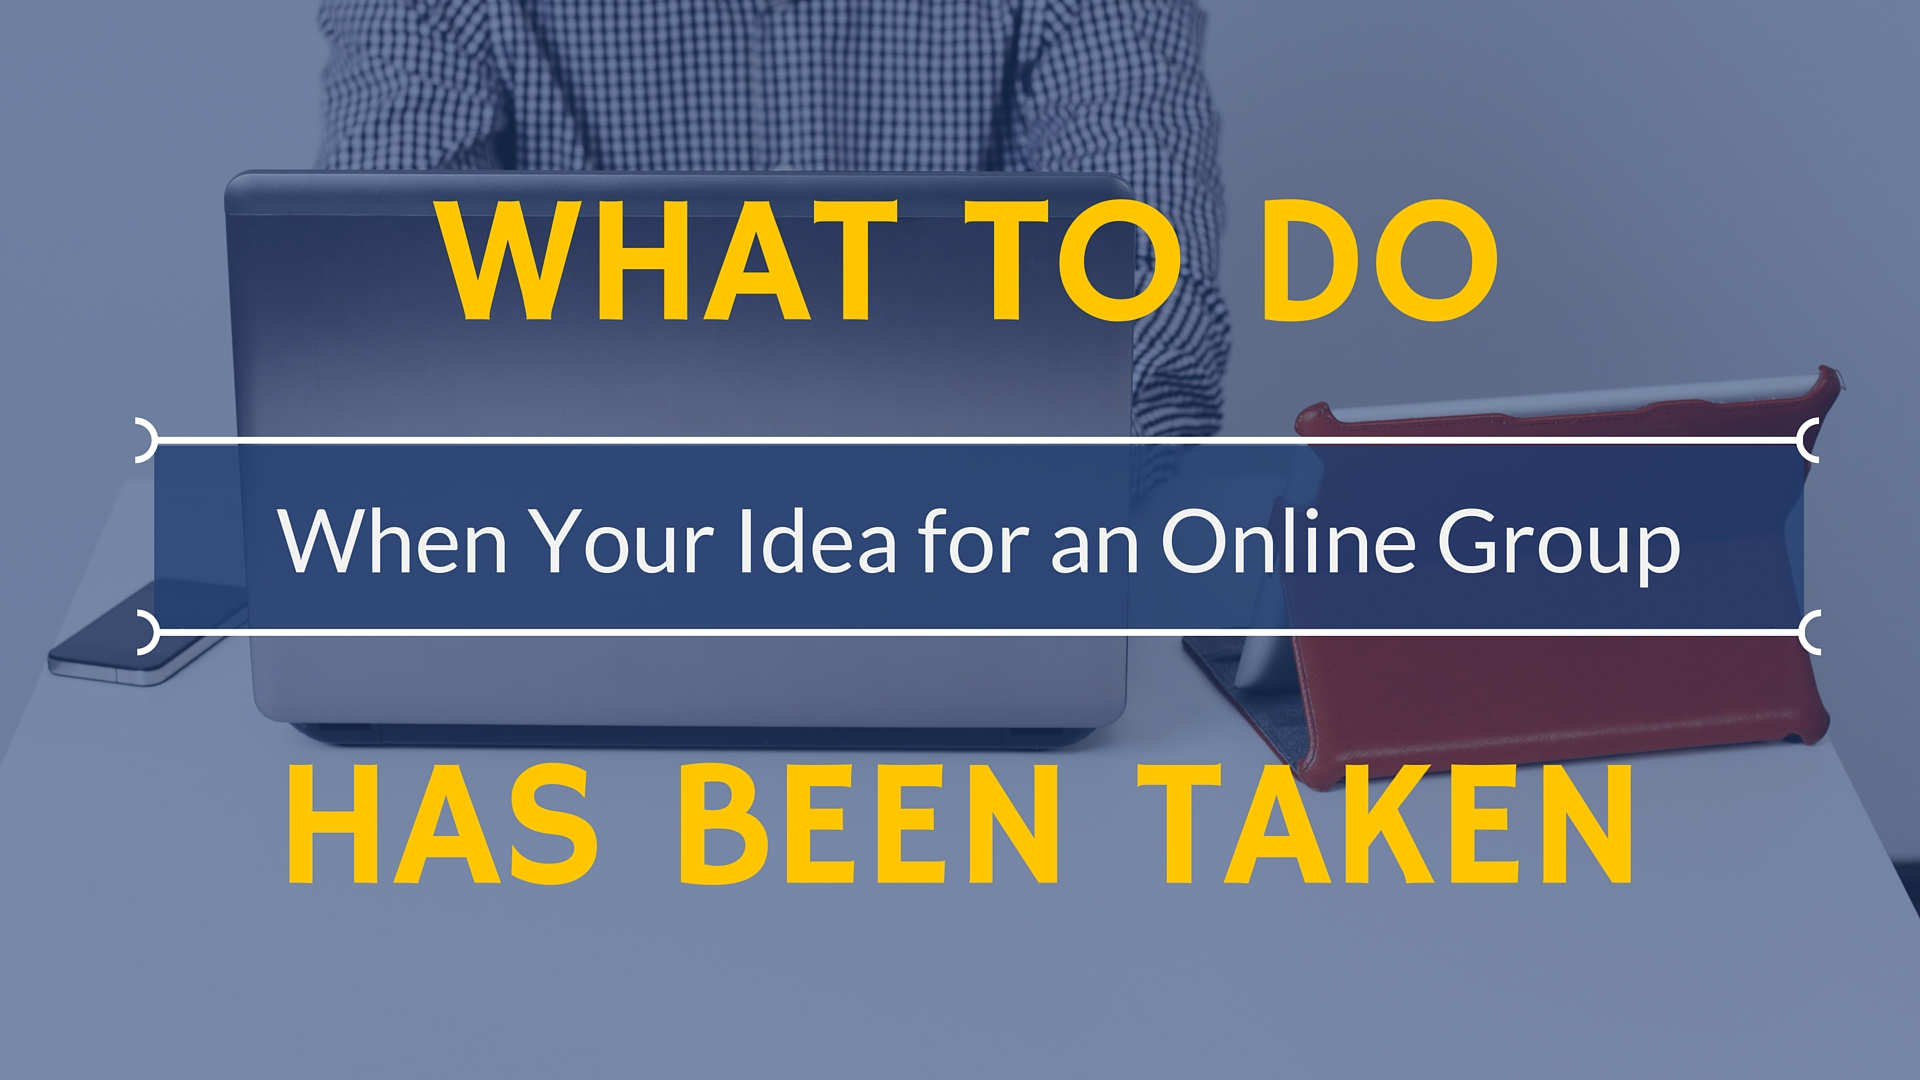 What to Do When Your Idea For an Online Group Has Been Taken